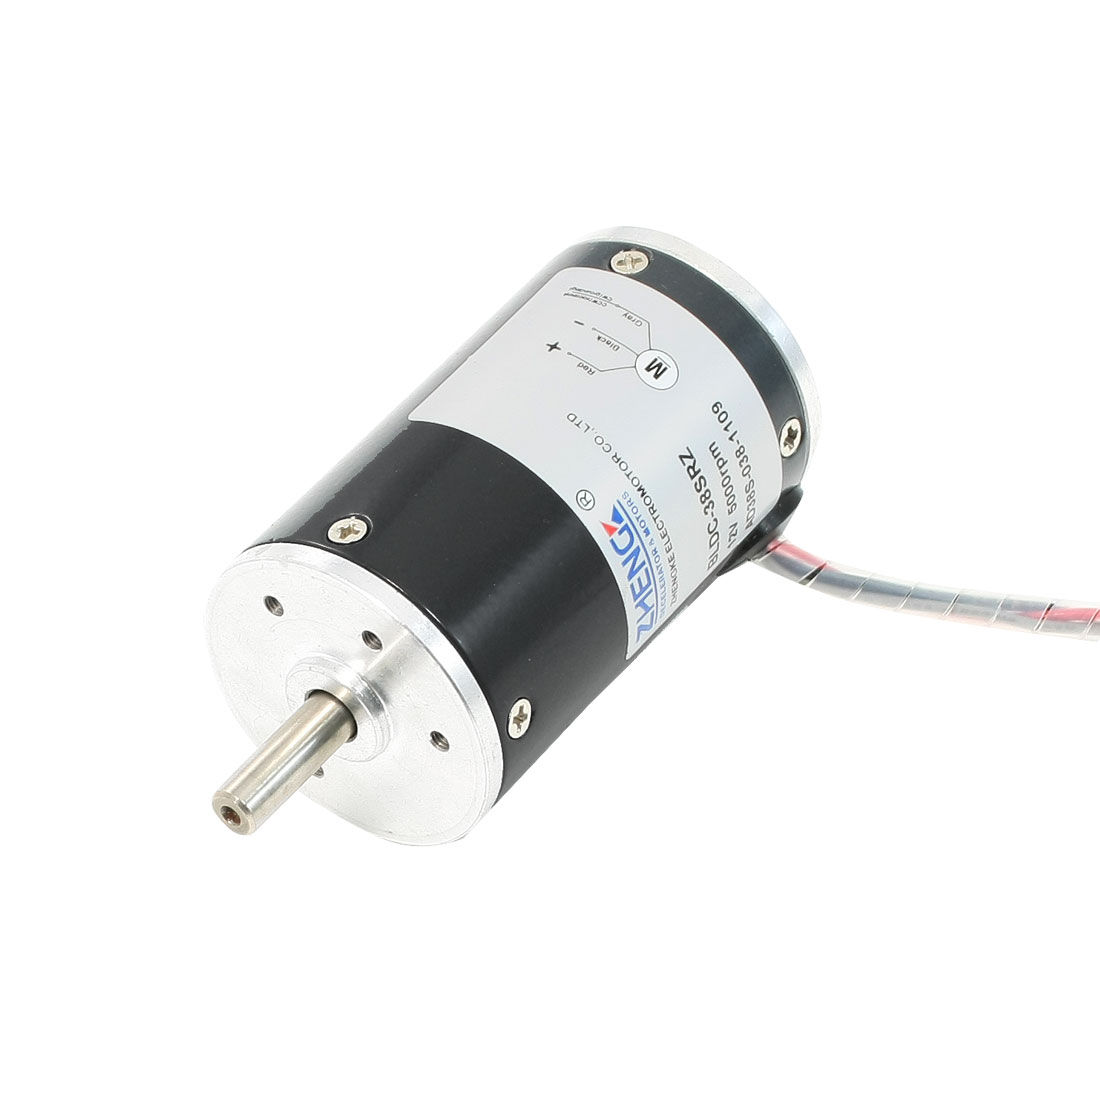 5000RPM DC 12V 0.3A Brushless Speed Control Motor 100G.cm